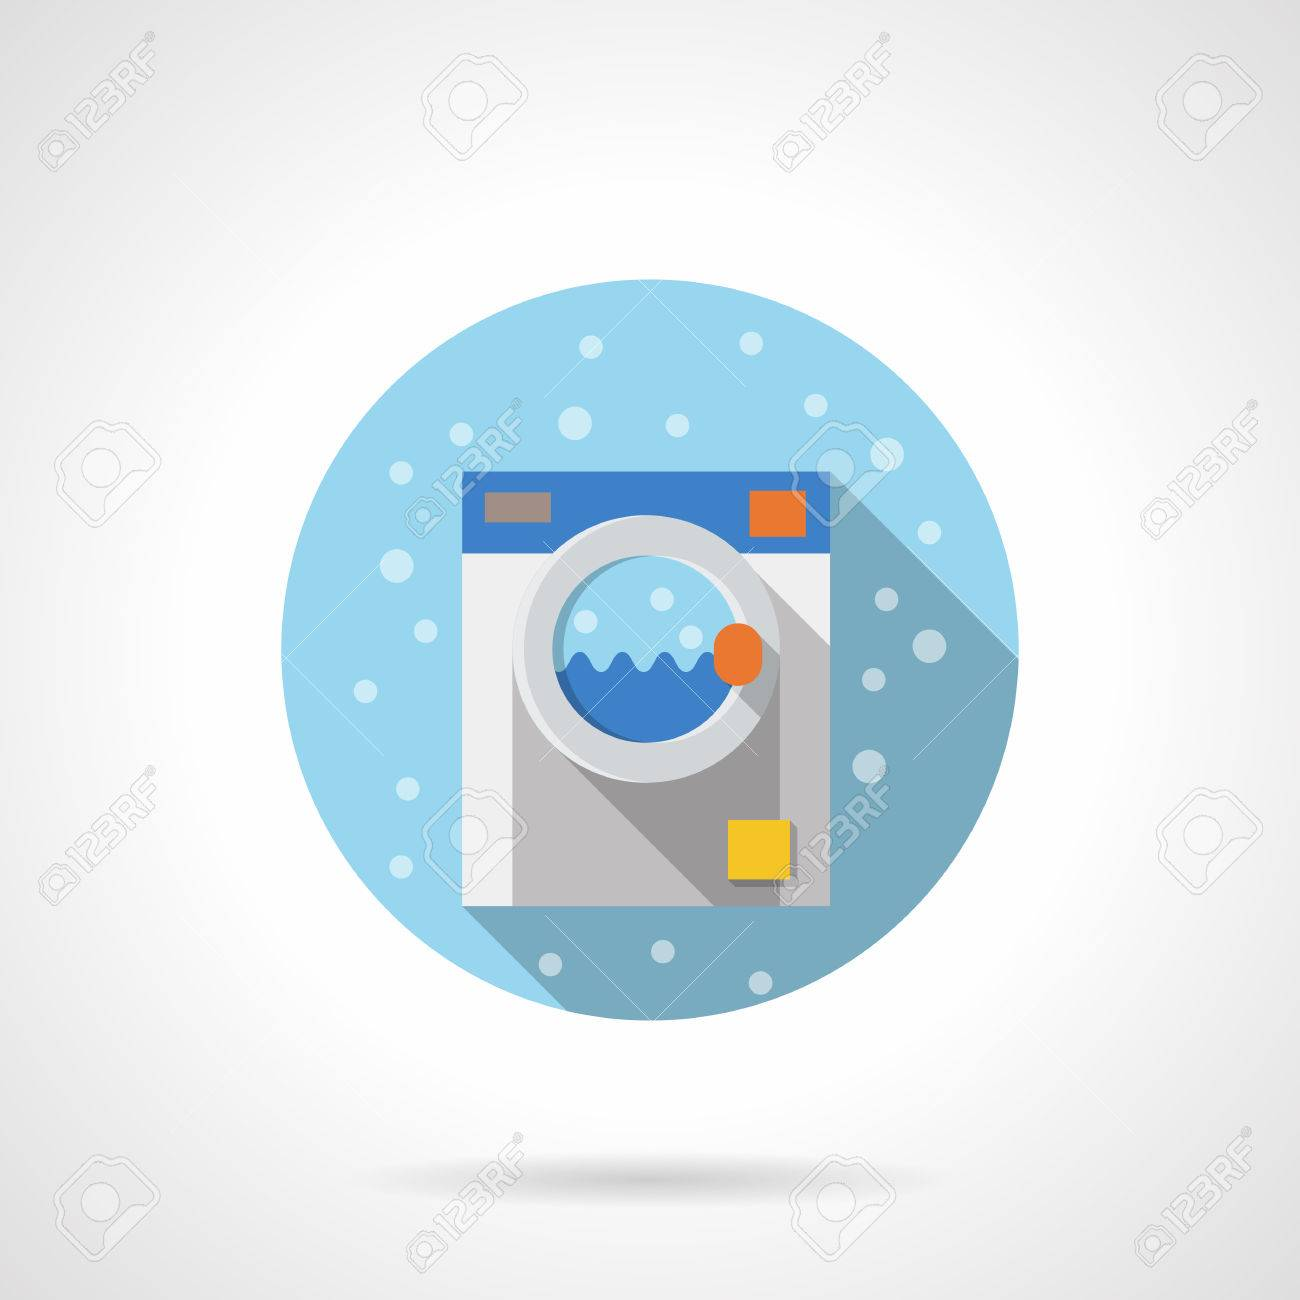 Laundry And Bathroom Equipment. Household Appliances. Bubbles Style. Flat